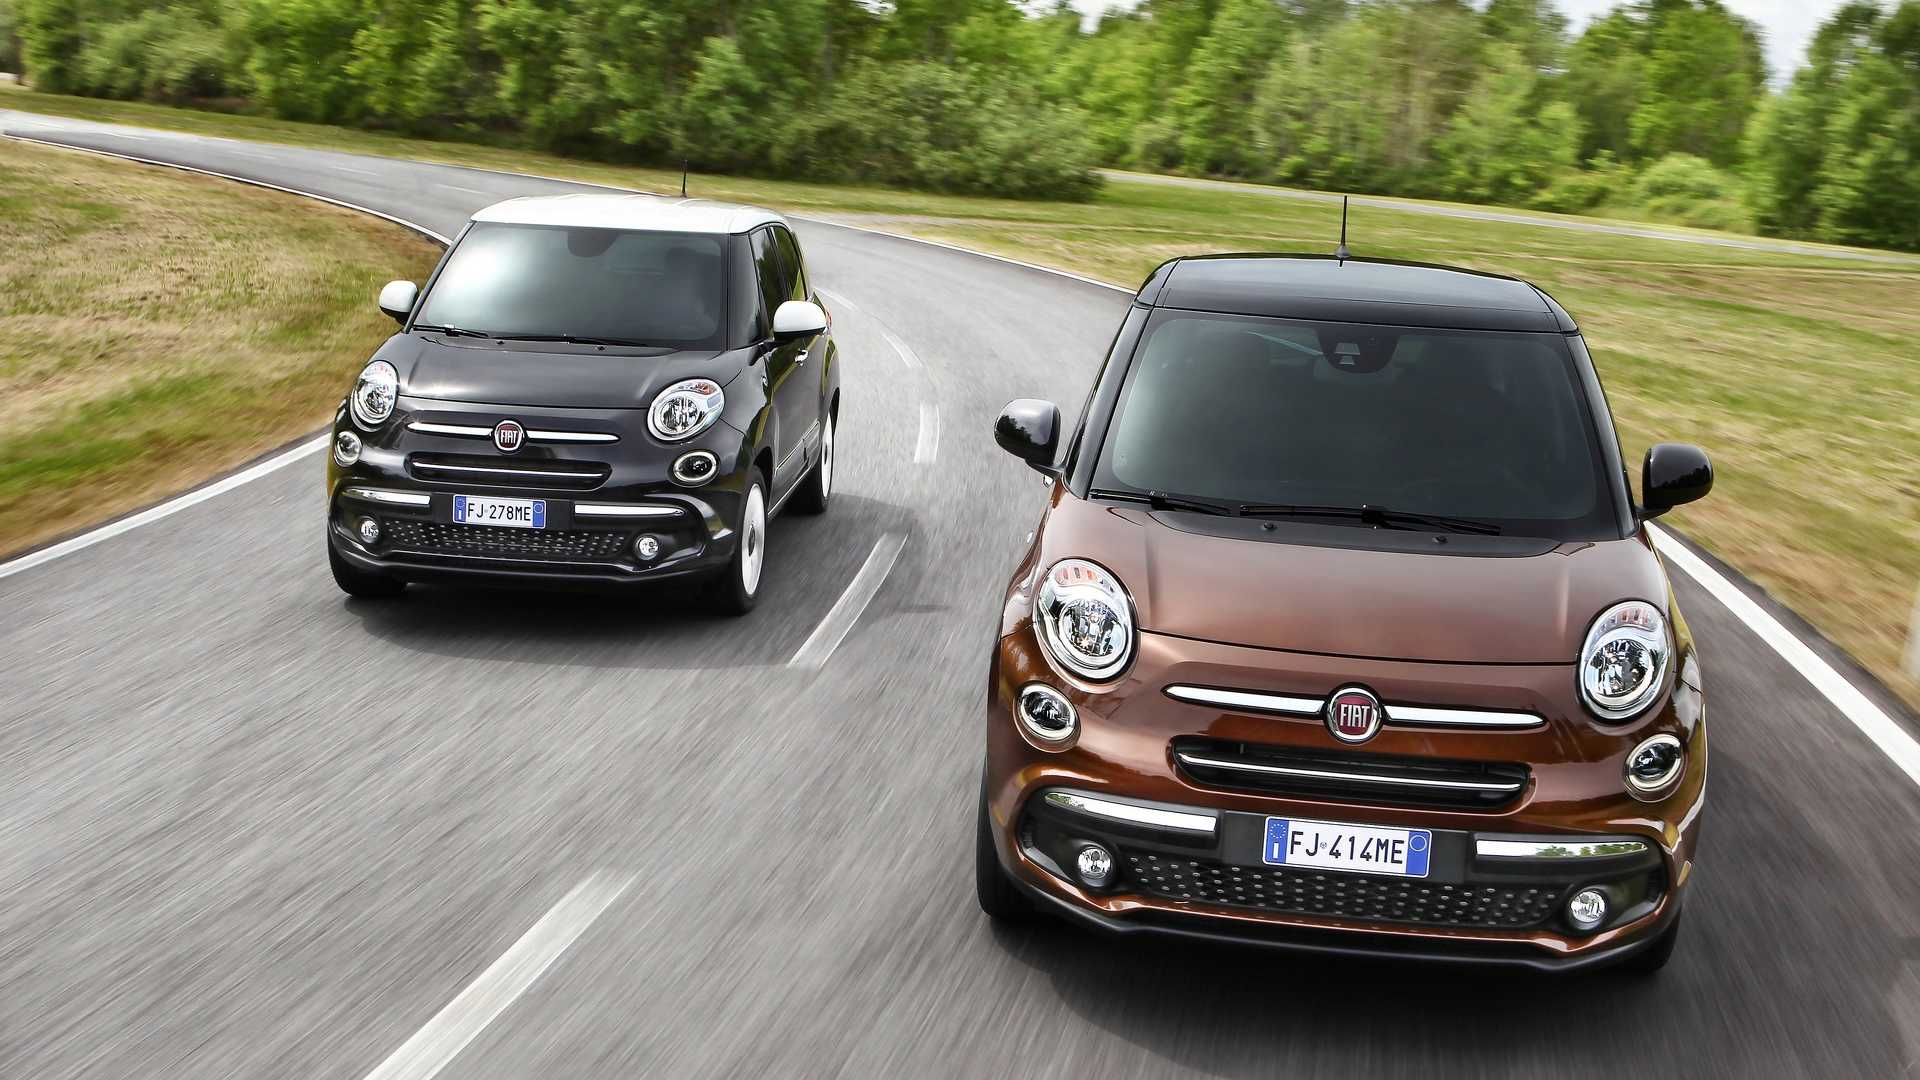 2018_Fiat_500L_wagon_facelift_01